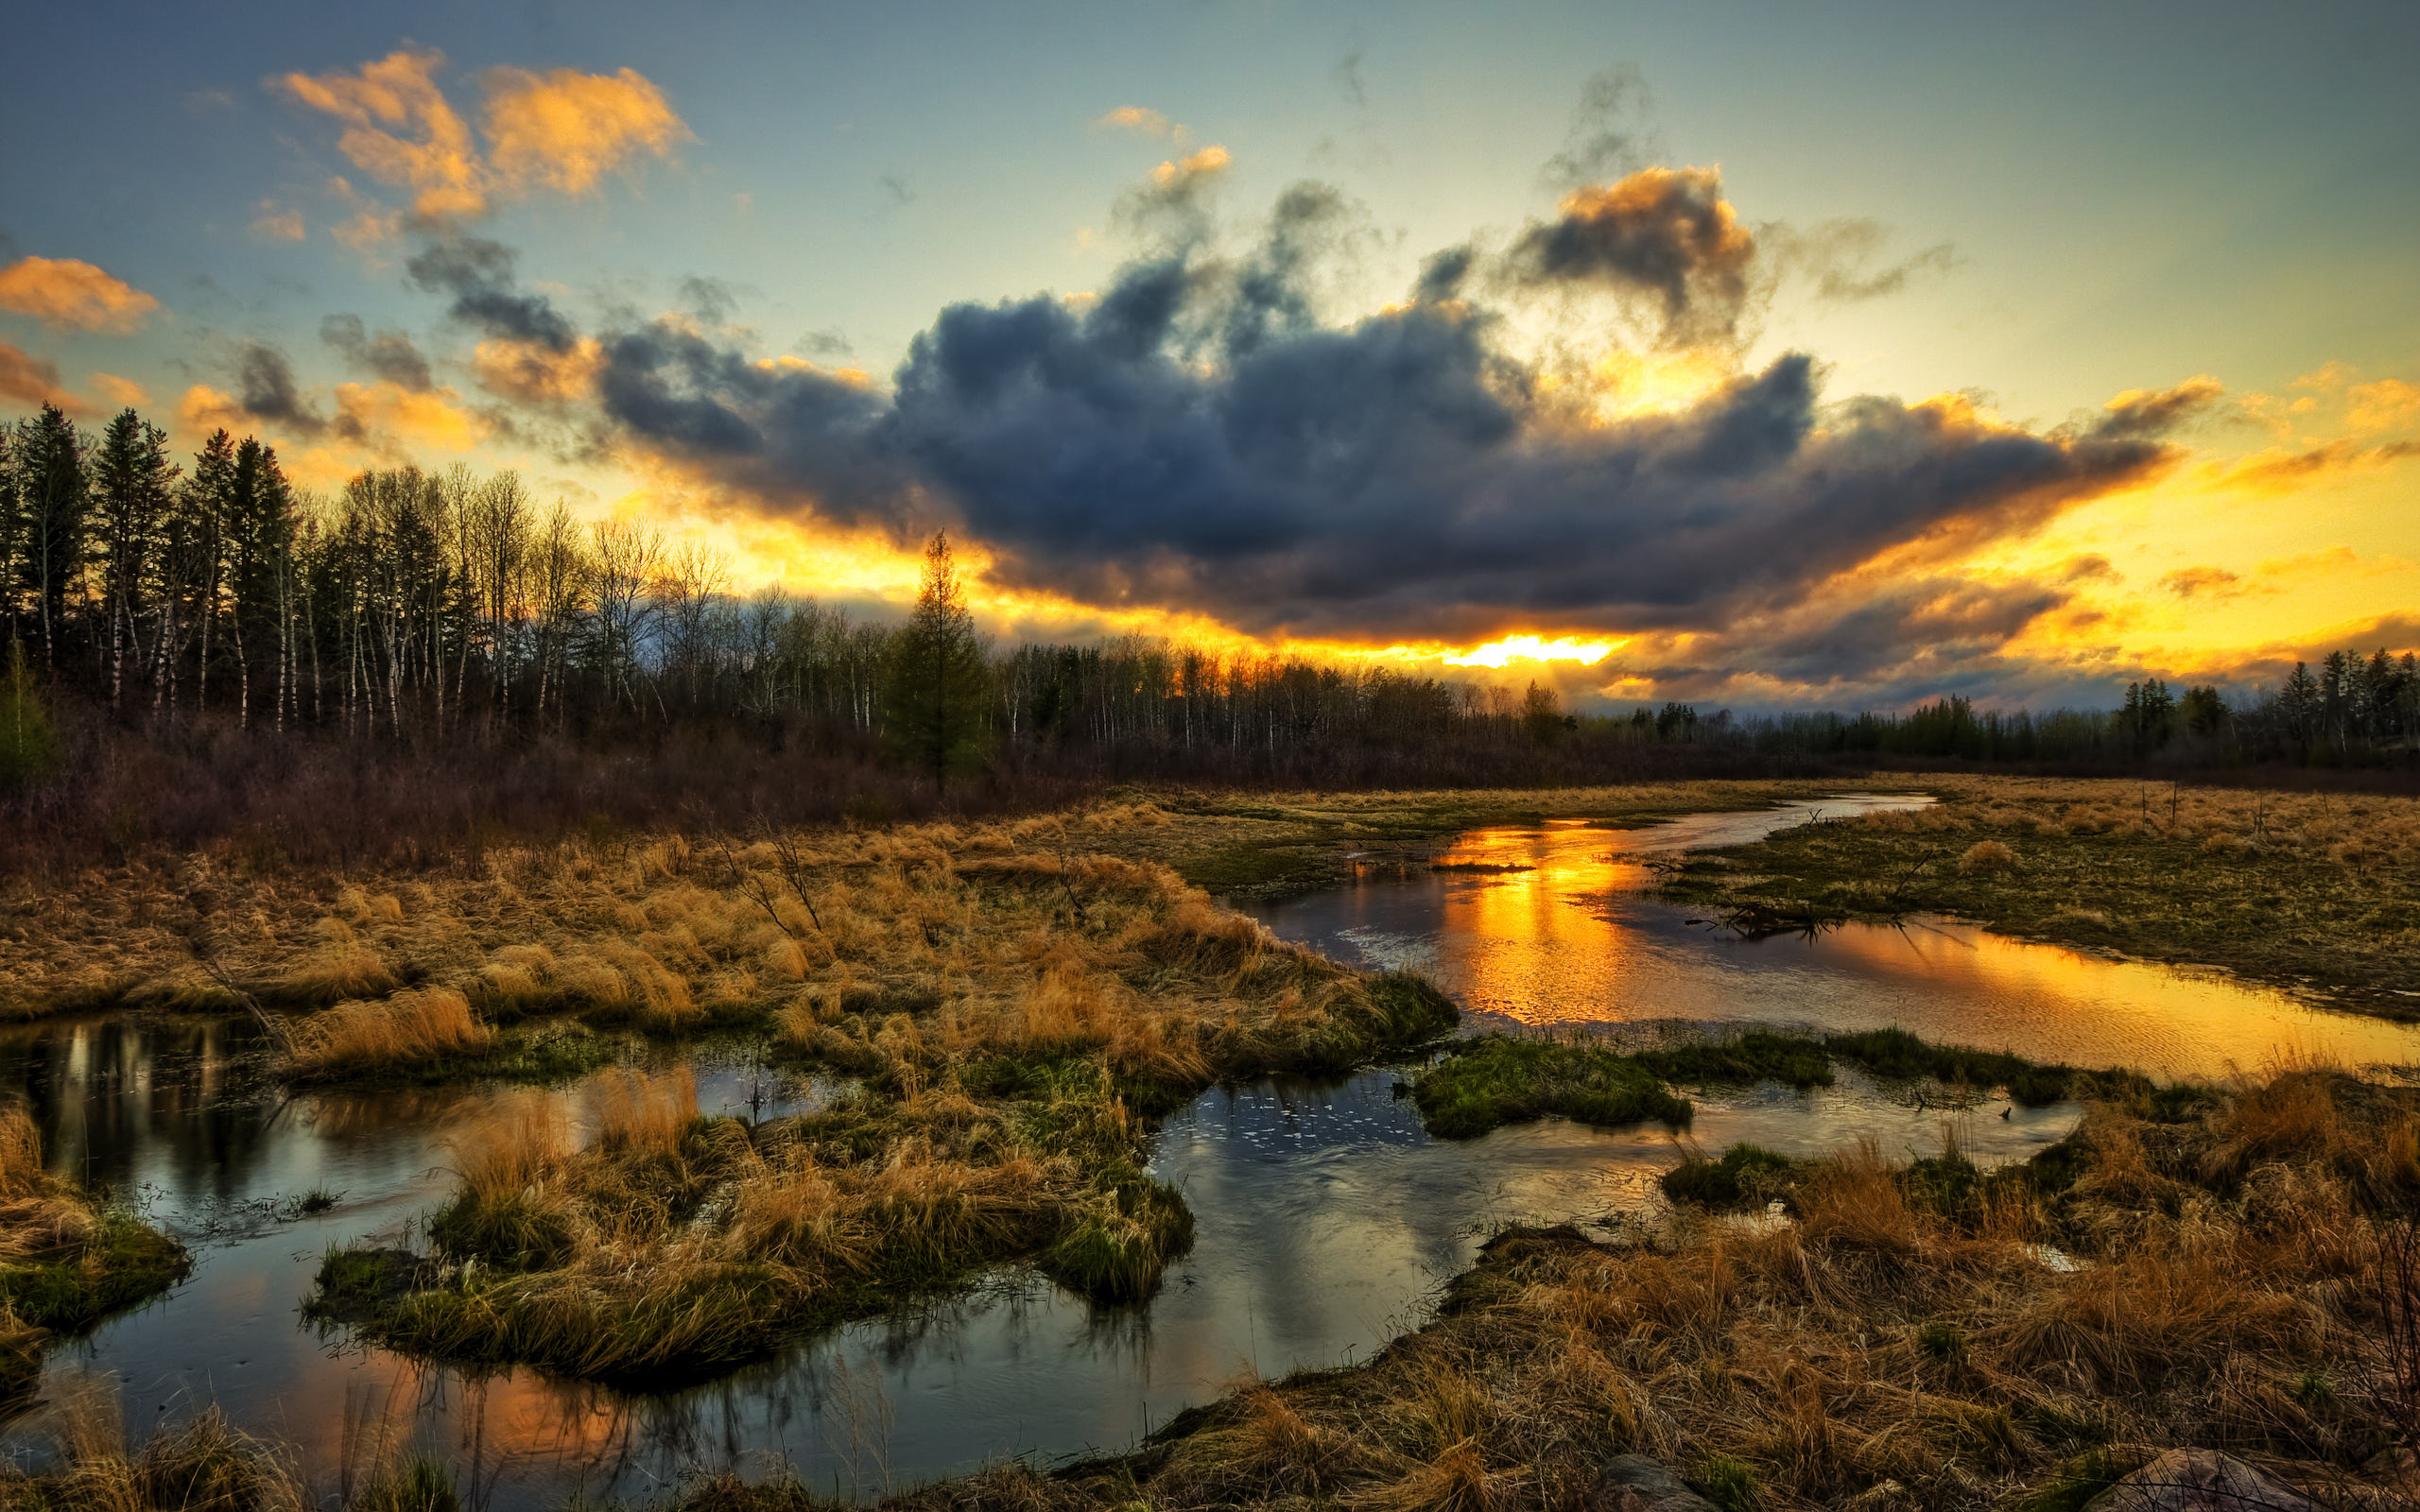 Earth - Landscape  - Photography - Swamp - Tundra - Forest - Clouds - Sunset - Skyline Wallpaper